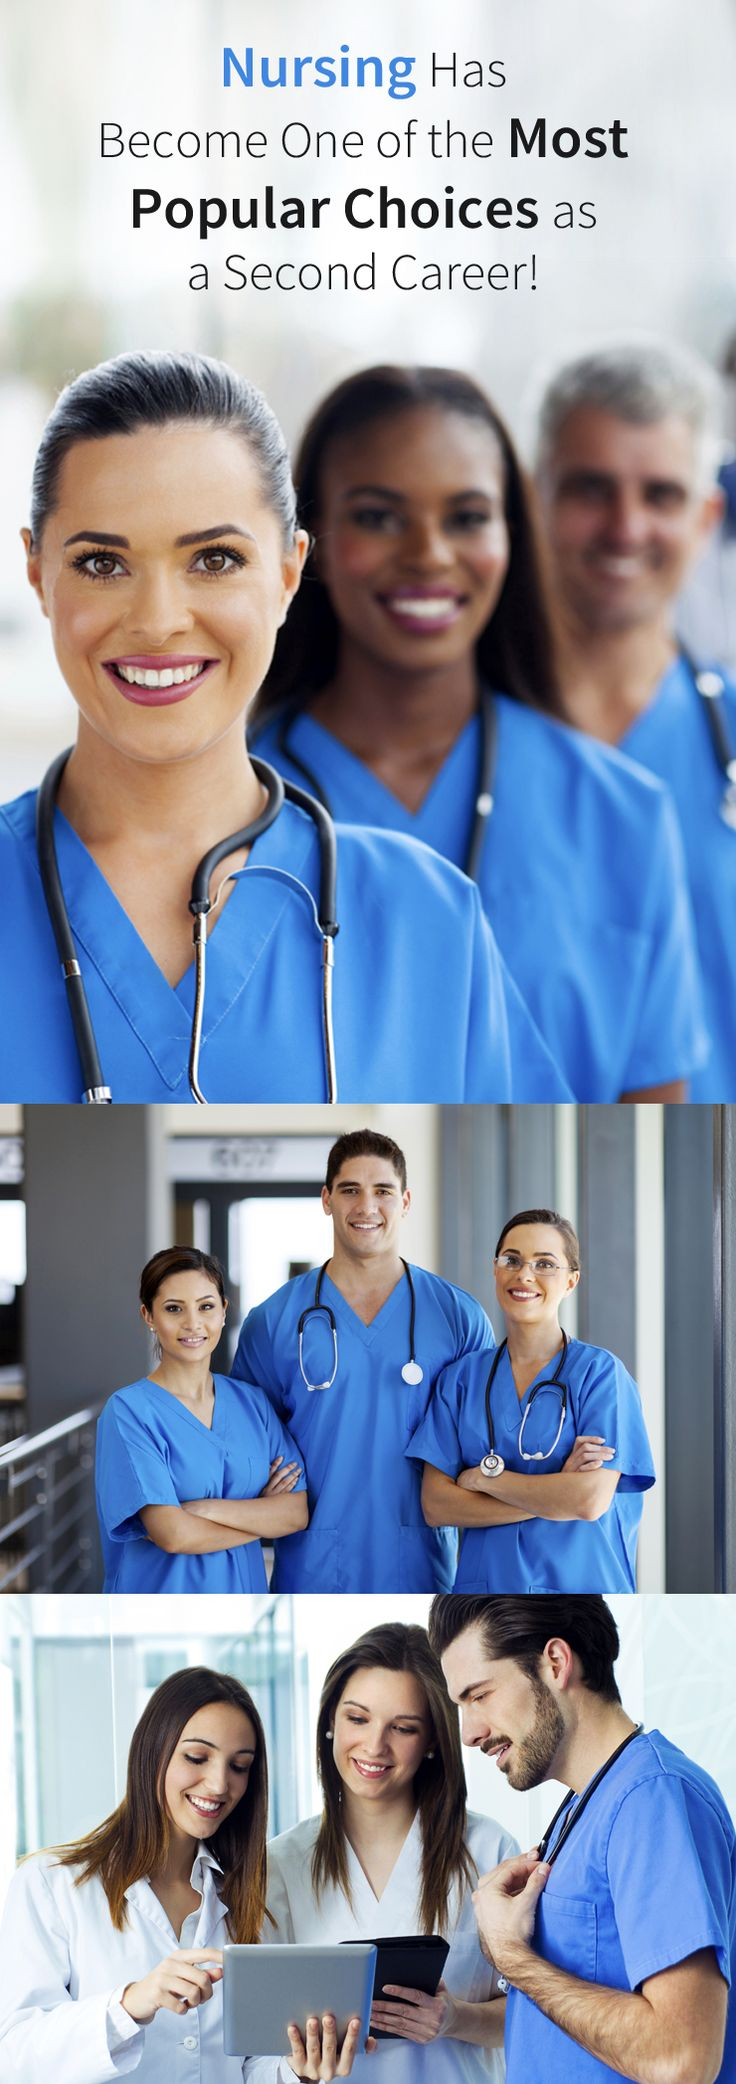 Why become a nurse? Because #nursing is one of the fastest growing occupation in the United States. Find campus/online nursing programs near you and get started!